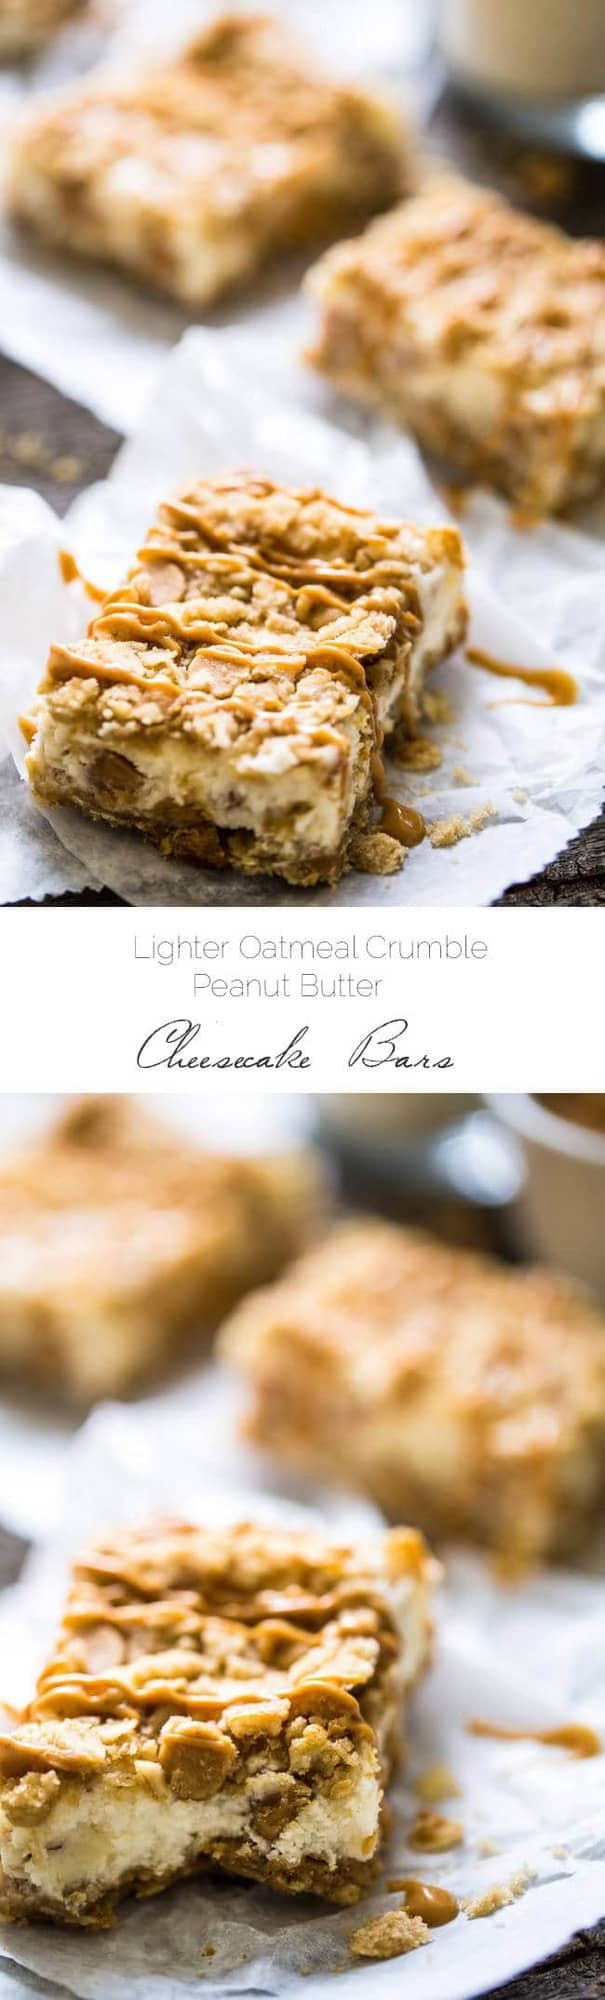 Healthier Oatmeal Crumble Peanut Butter Cheesecake Bars - SO easy to make and always a hit at gatherings! So creamy that you would never know they're lightened up with Greek yogurt and whole wheat flour! | Foodfaithfitness.com | @FoodFaithFit